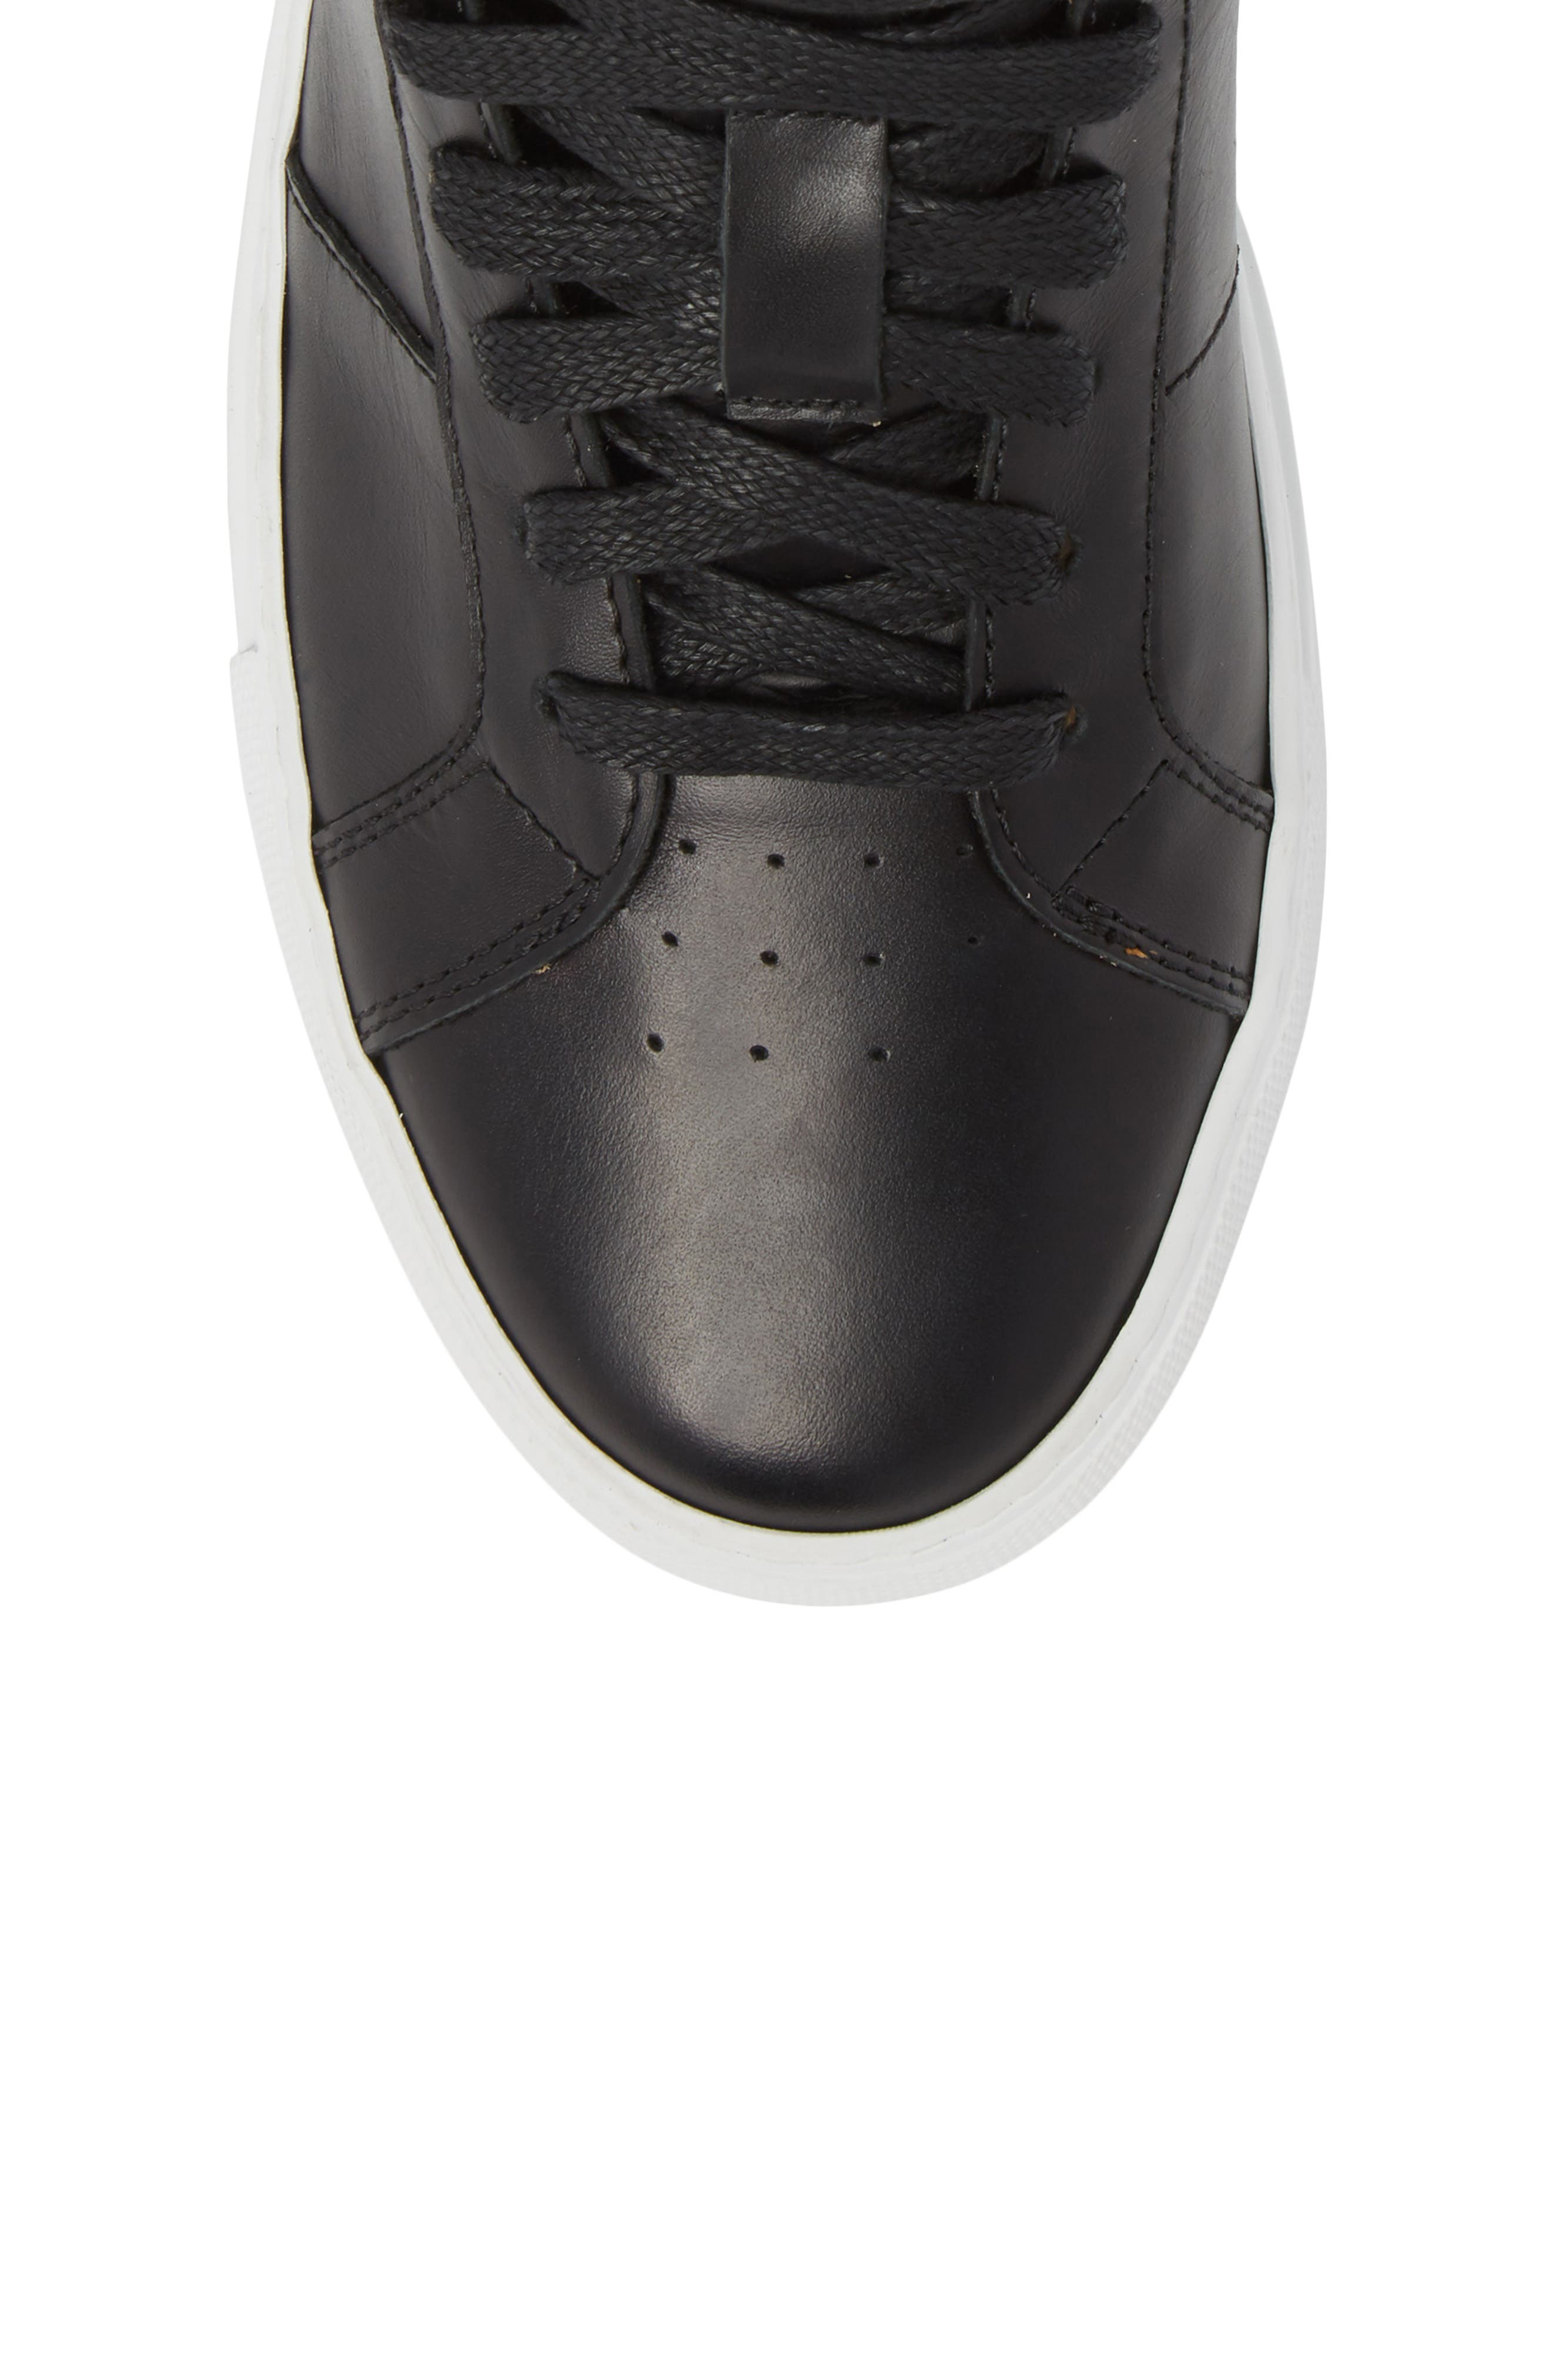 Royale High Top Sneaker,                             Alternate thumbnail 5, color,                             001